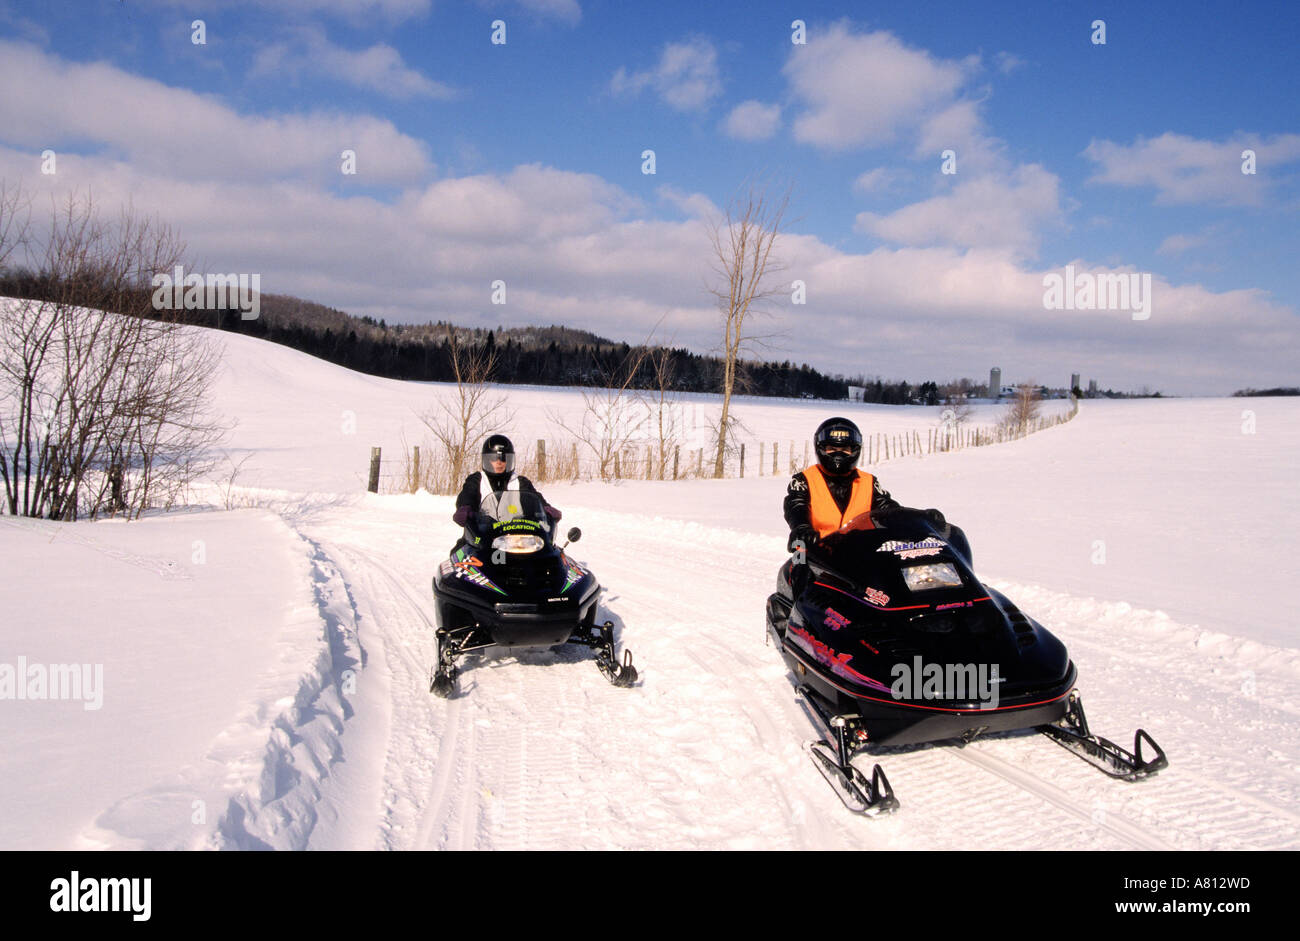 Canada, Quebec Province, carnival time, snowmobile ride - Stock Image